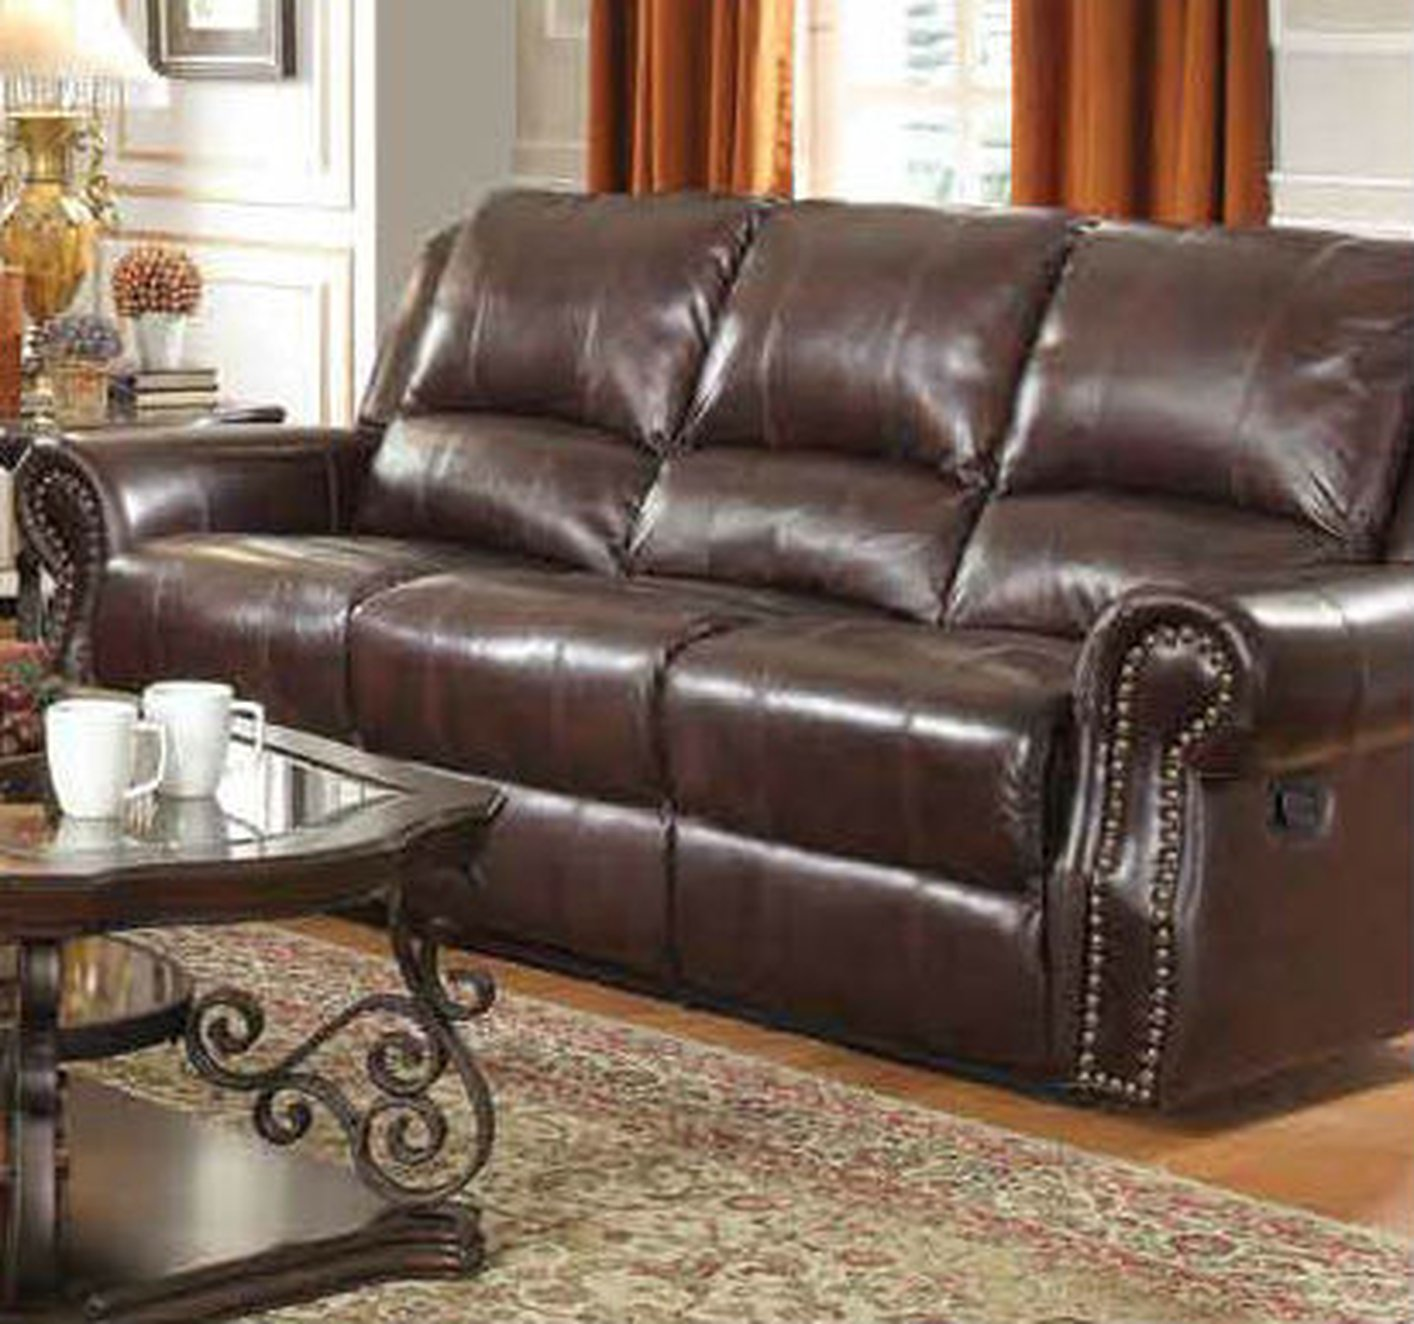 Brown Leather Power Reclining Sofa & Brown Leather Power Reclining Sofa - Steal-A-Sofa Furniture Outlet ... islam-shia.org